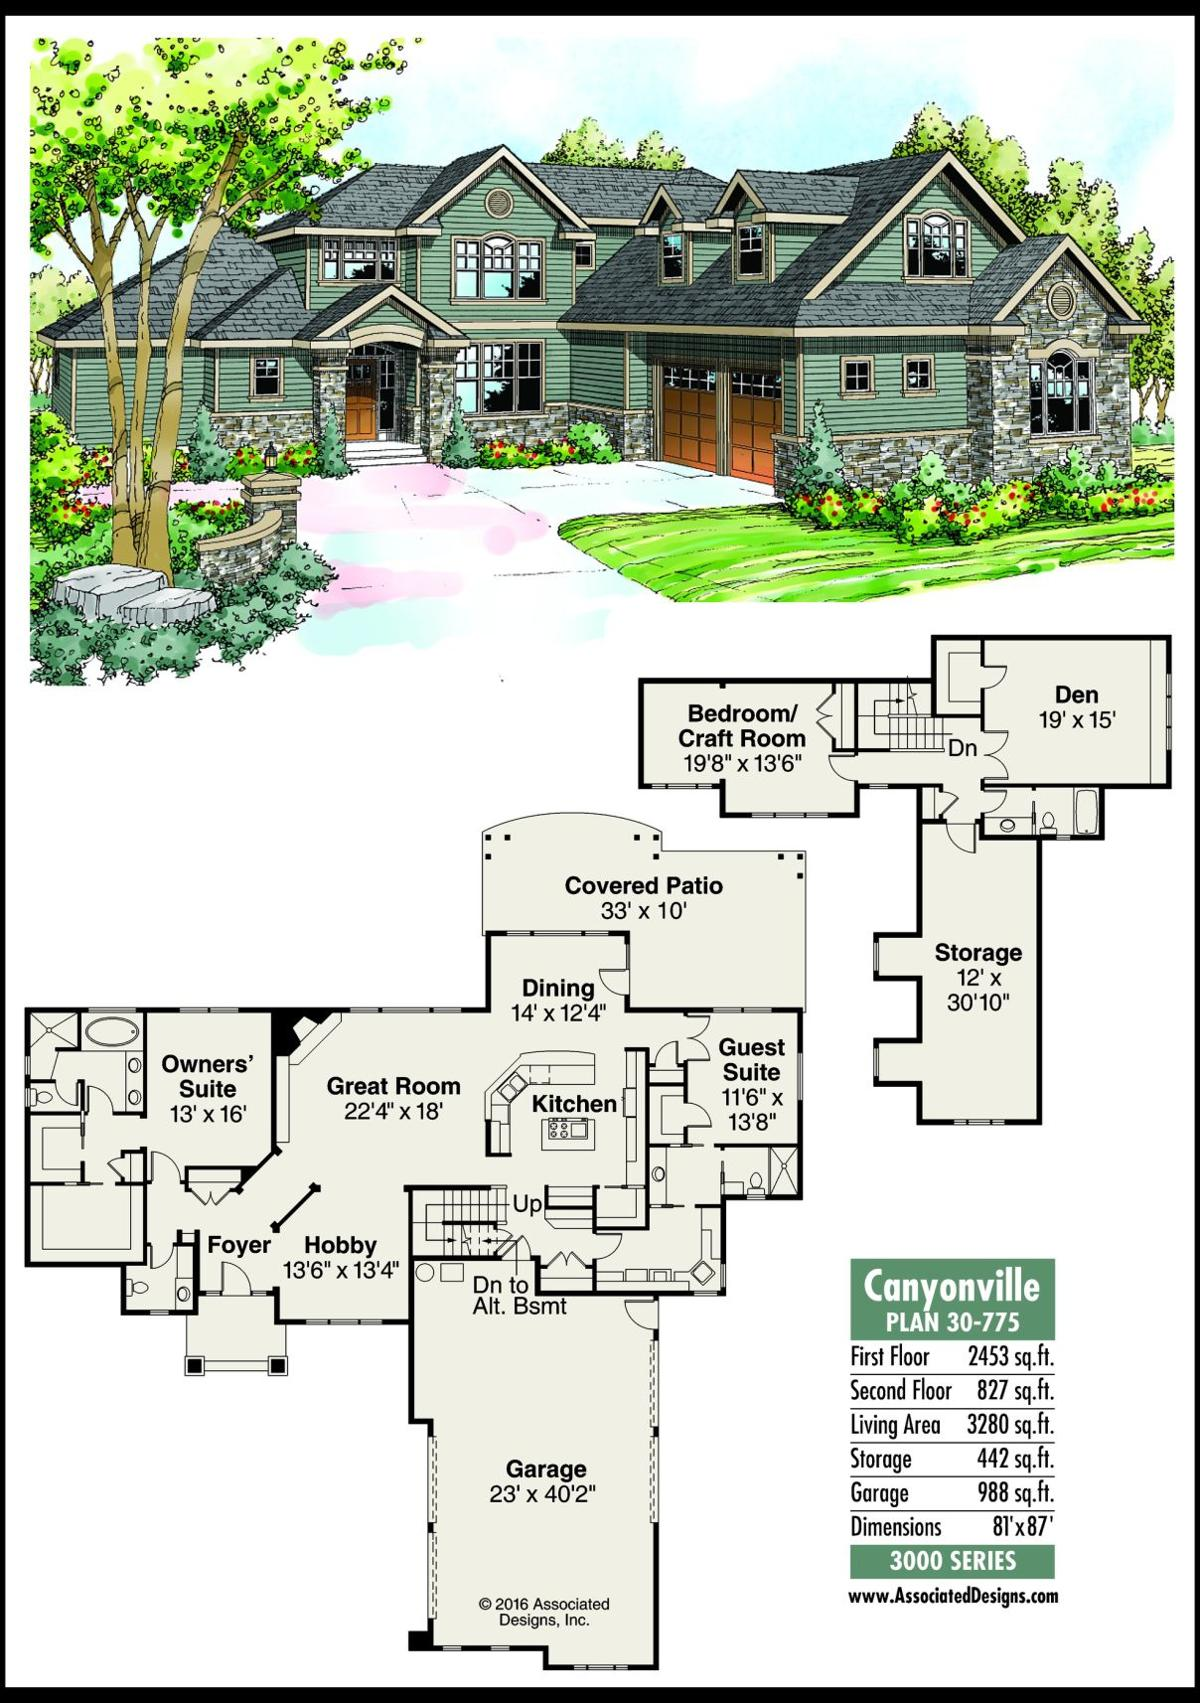 This week's house plan Canyonville 30-775